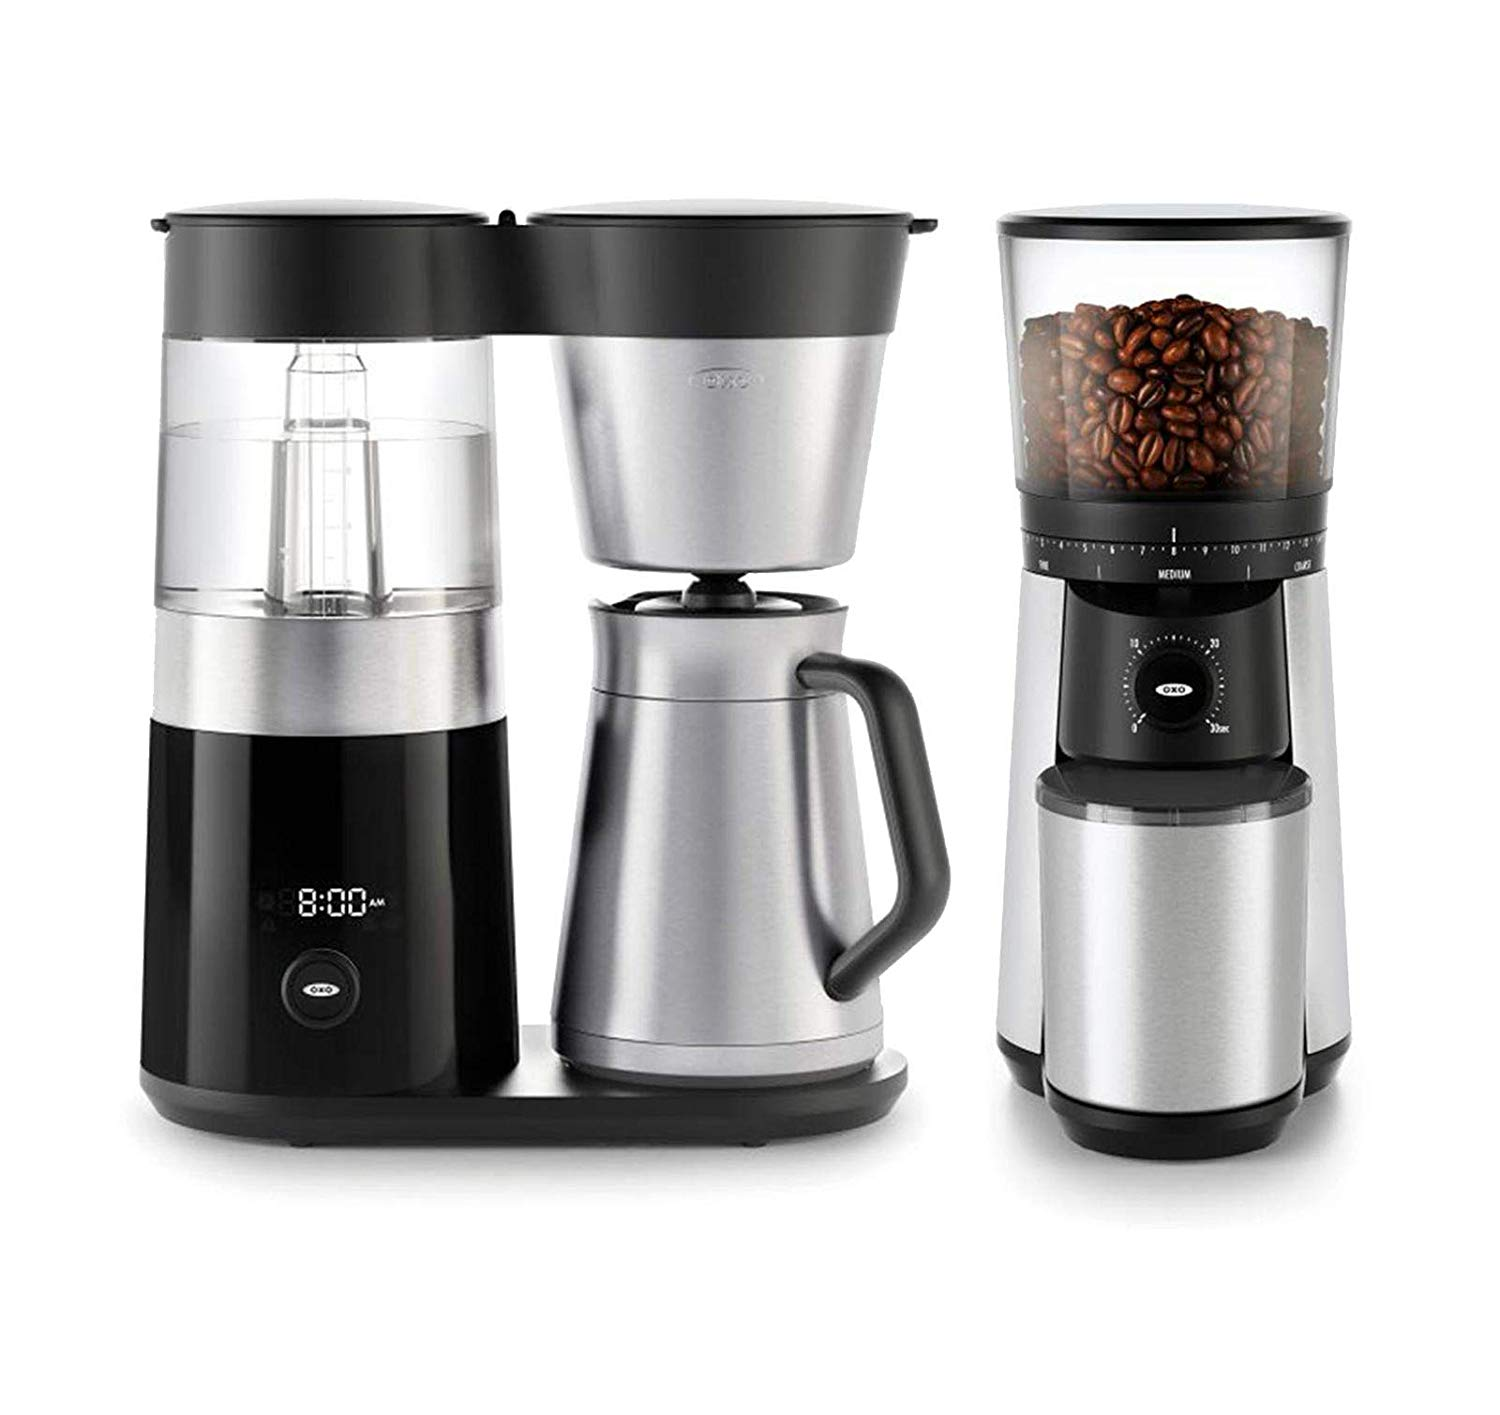 OXO BREW 9 Cup Programmable Coffee Maker Bundle | Bean to Cup Coffee Machine